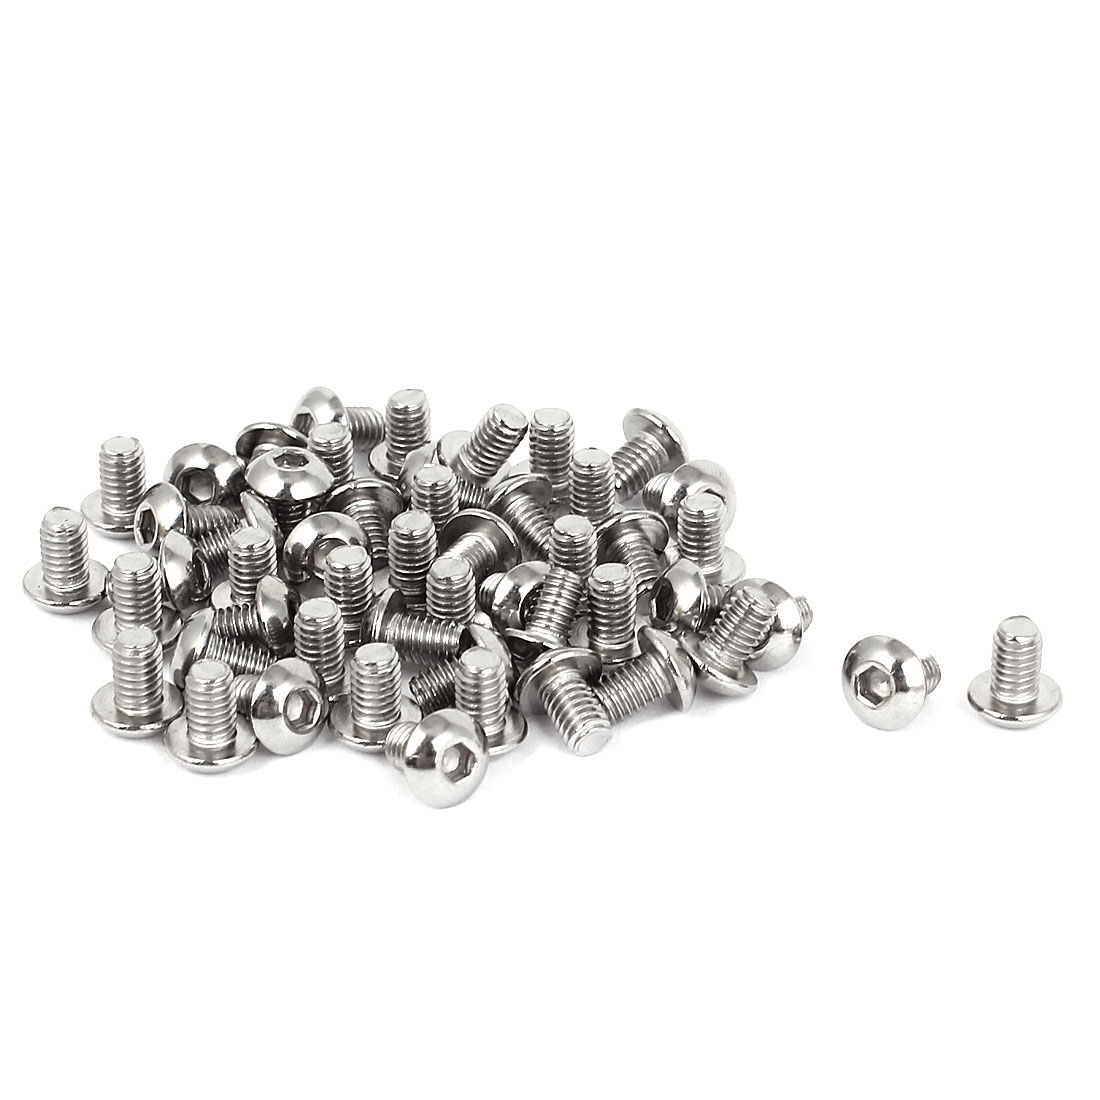 50 Pcs 2.5mm Hex Key Stainless Steel Button Head Socket Cap Screws M4x0.7mmx6mm